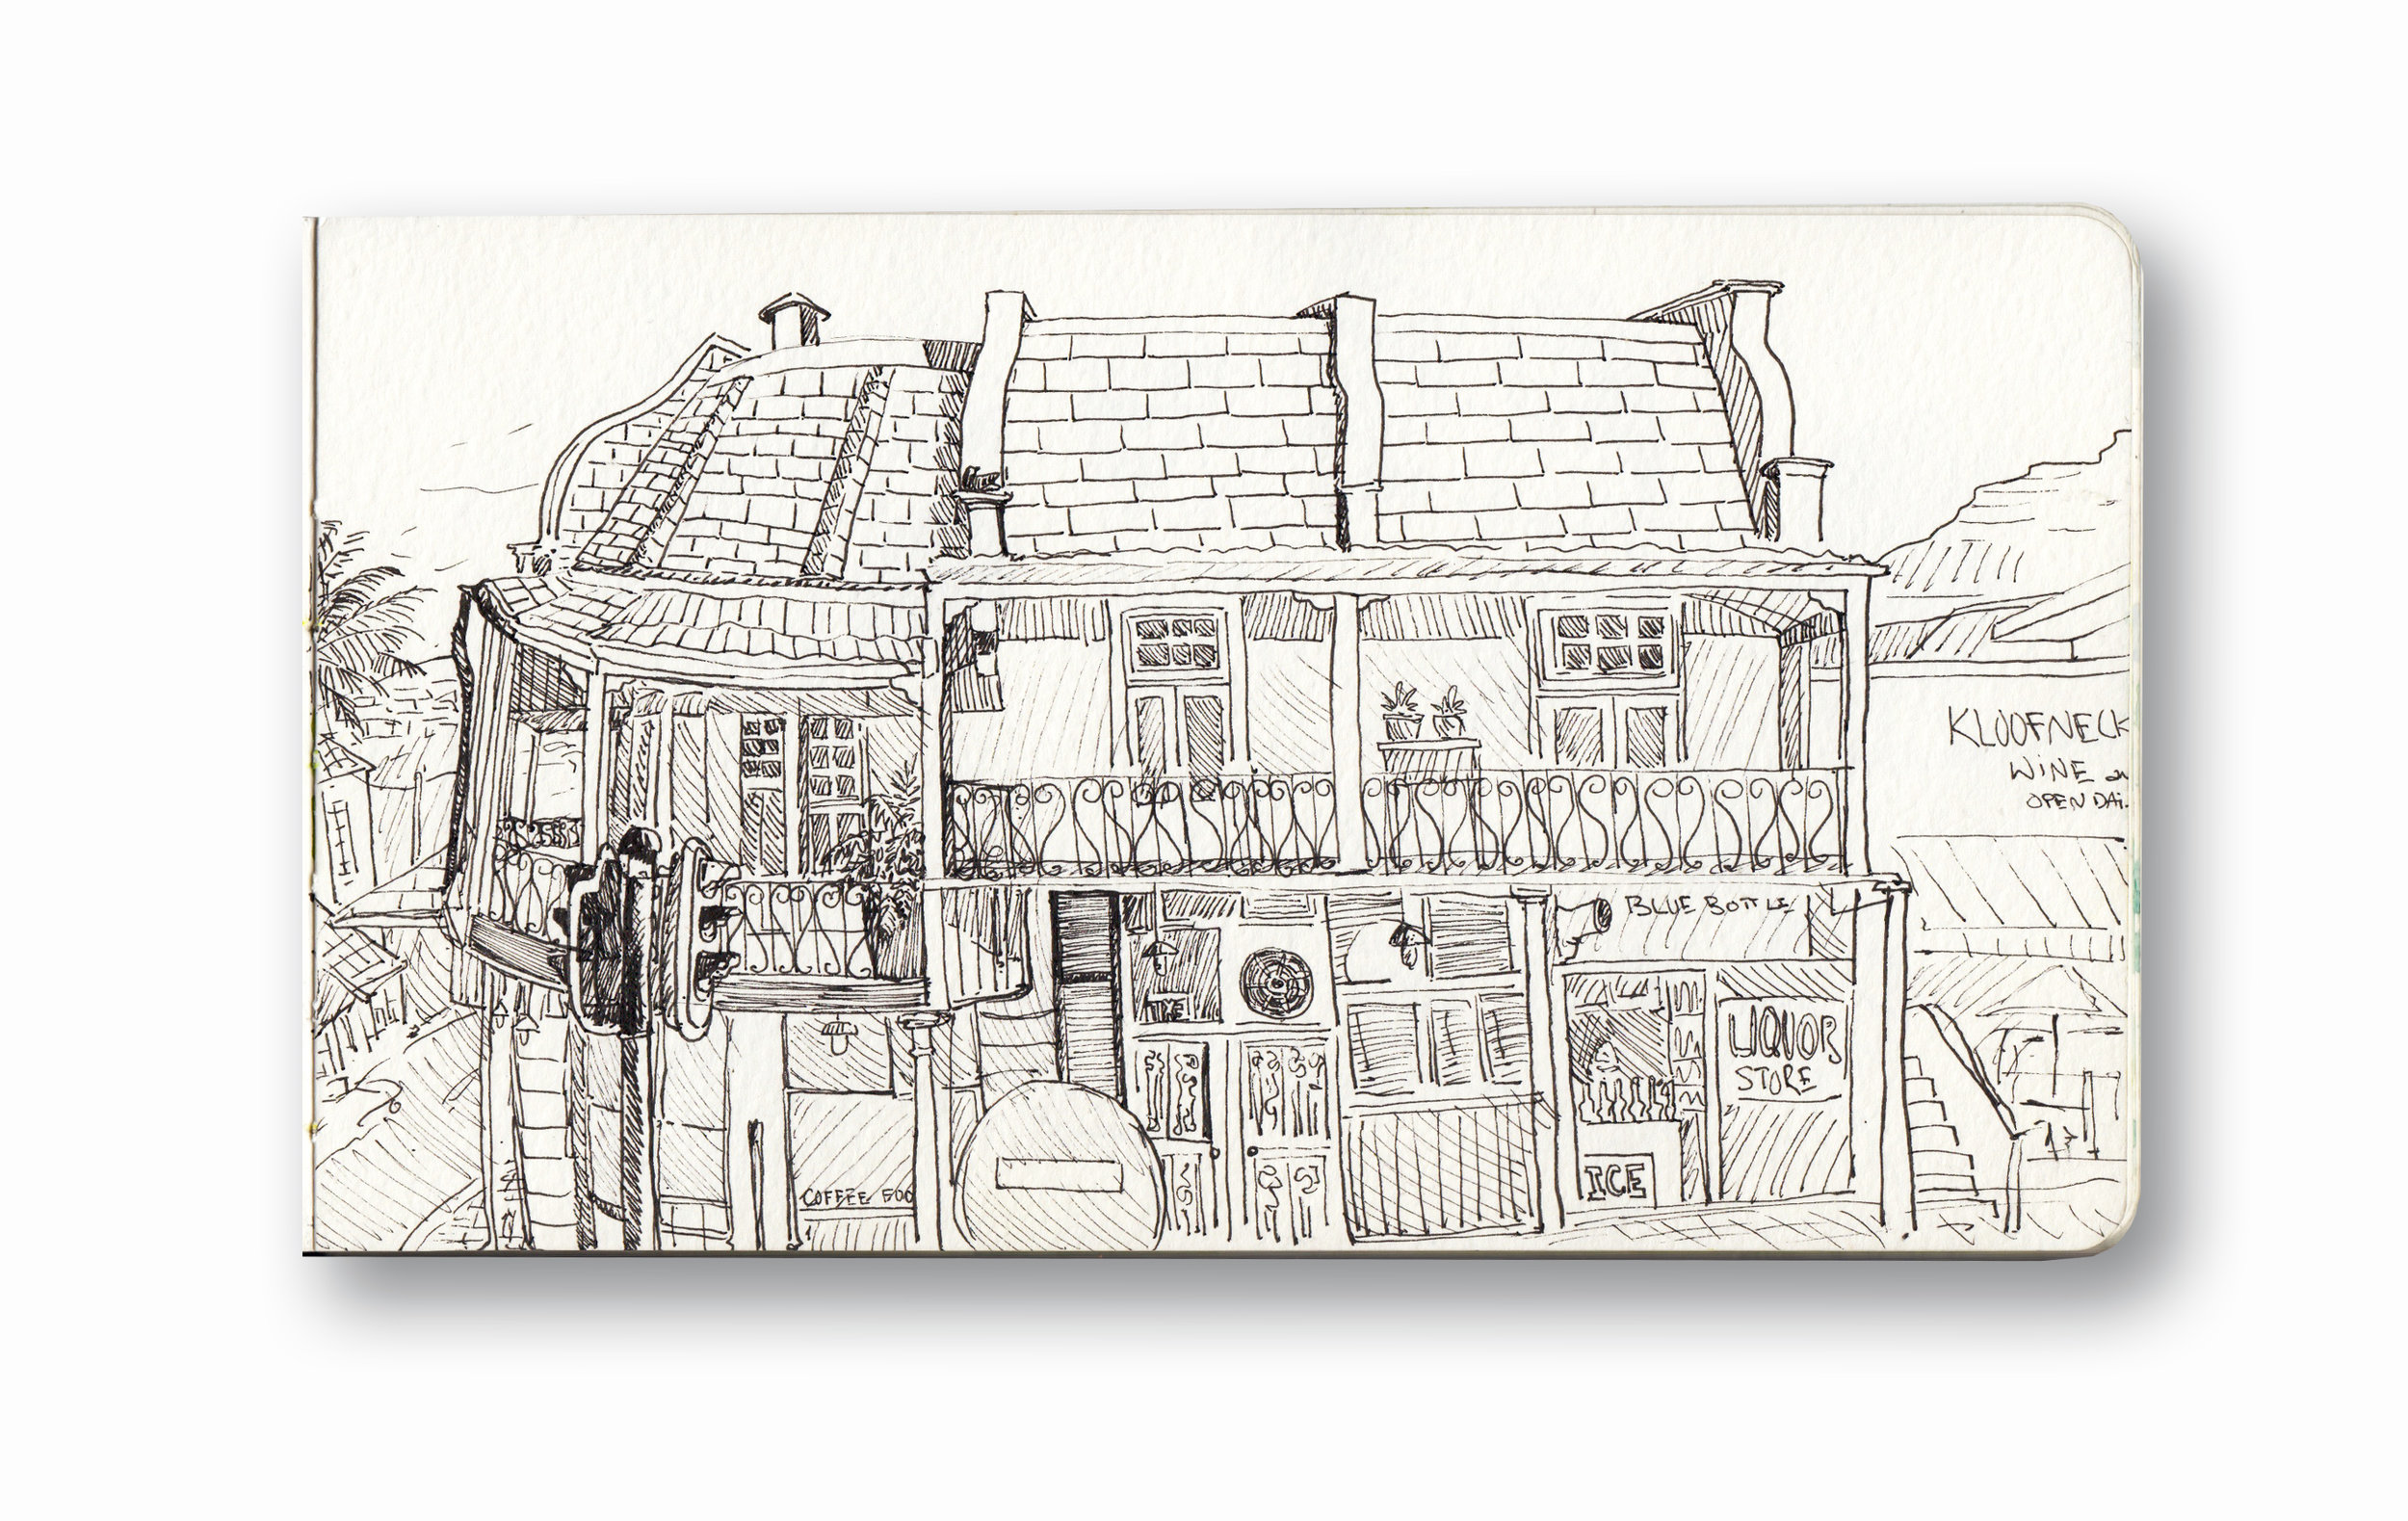 Kloofnek Street, The Power and the Glory, View from Beleza Tapas BAr - Cape Town, SA   Pen Ink in Moleskine 5 x 8""